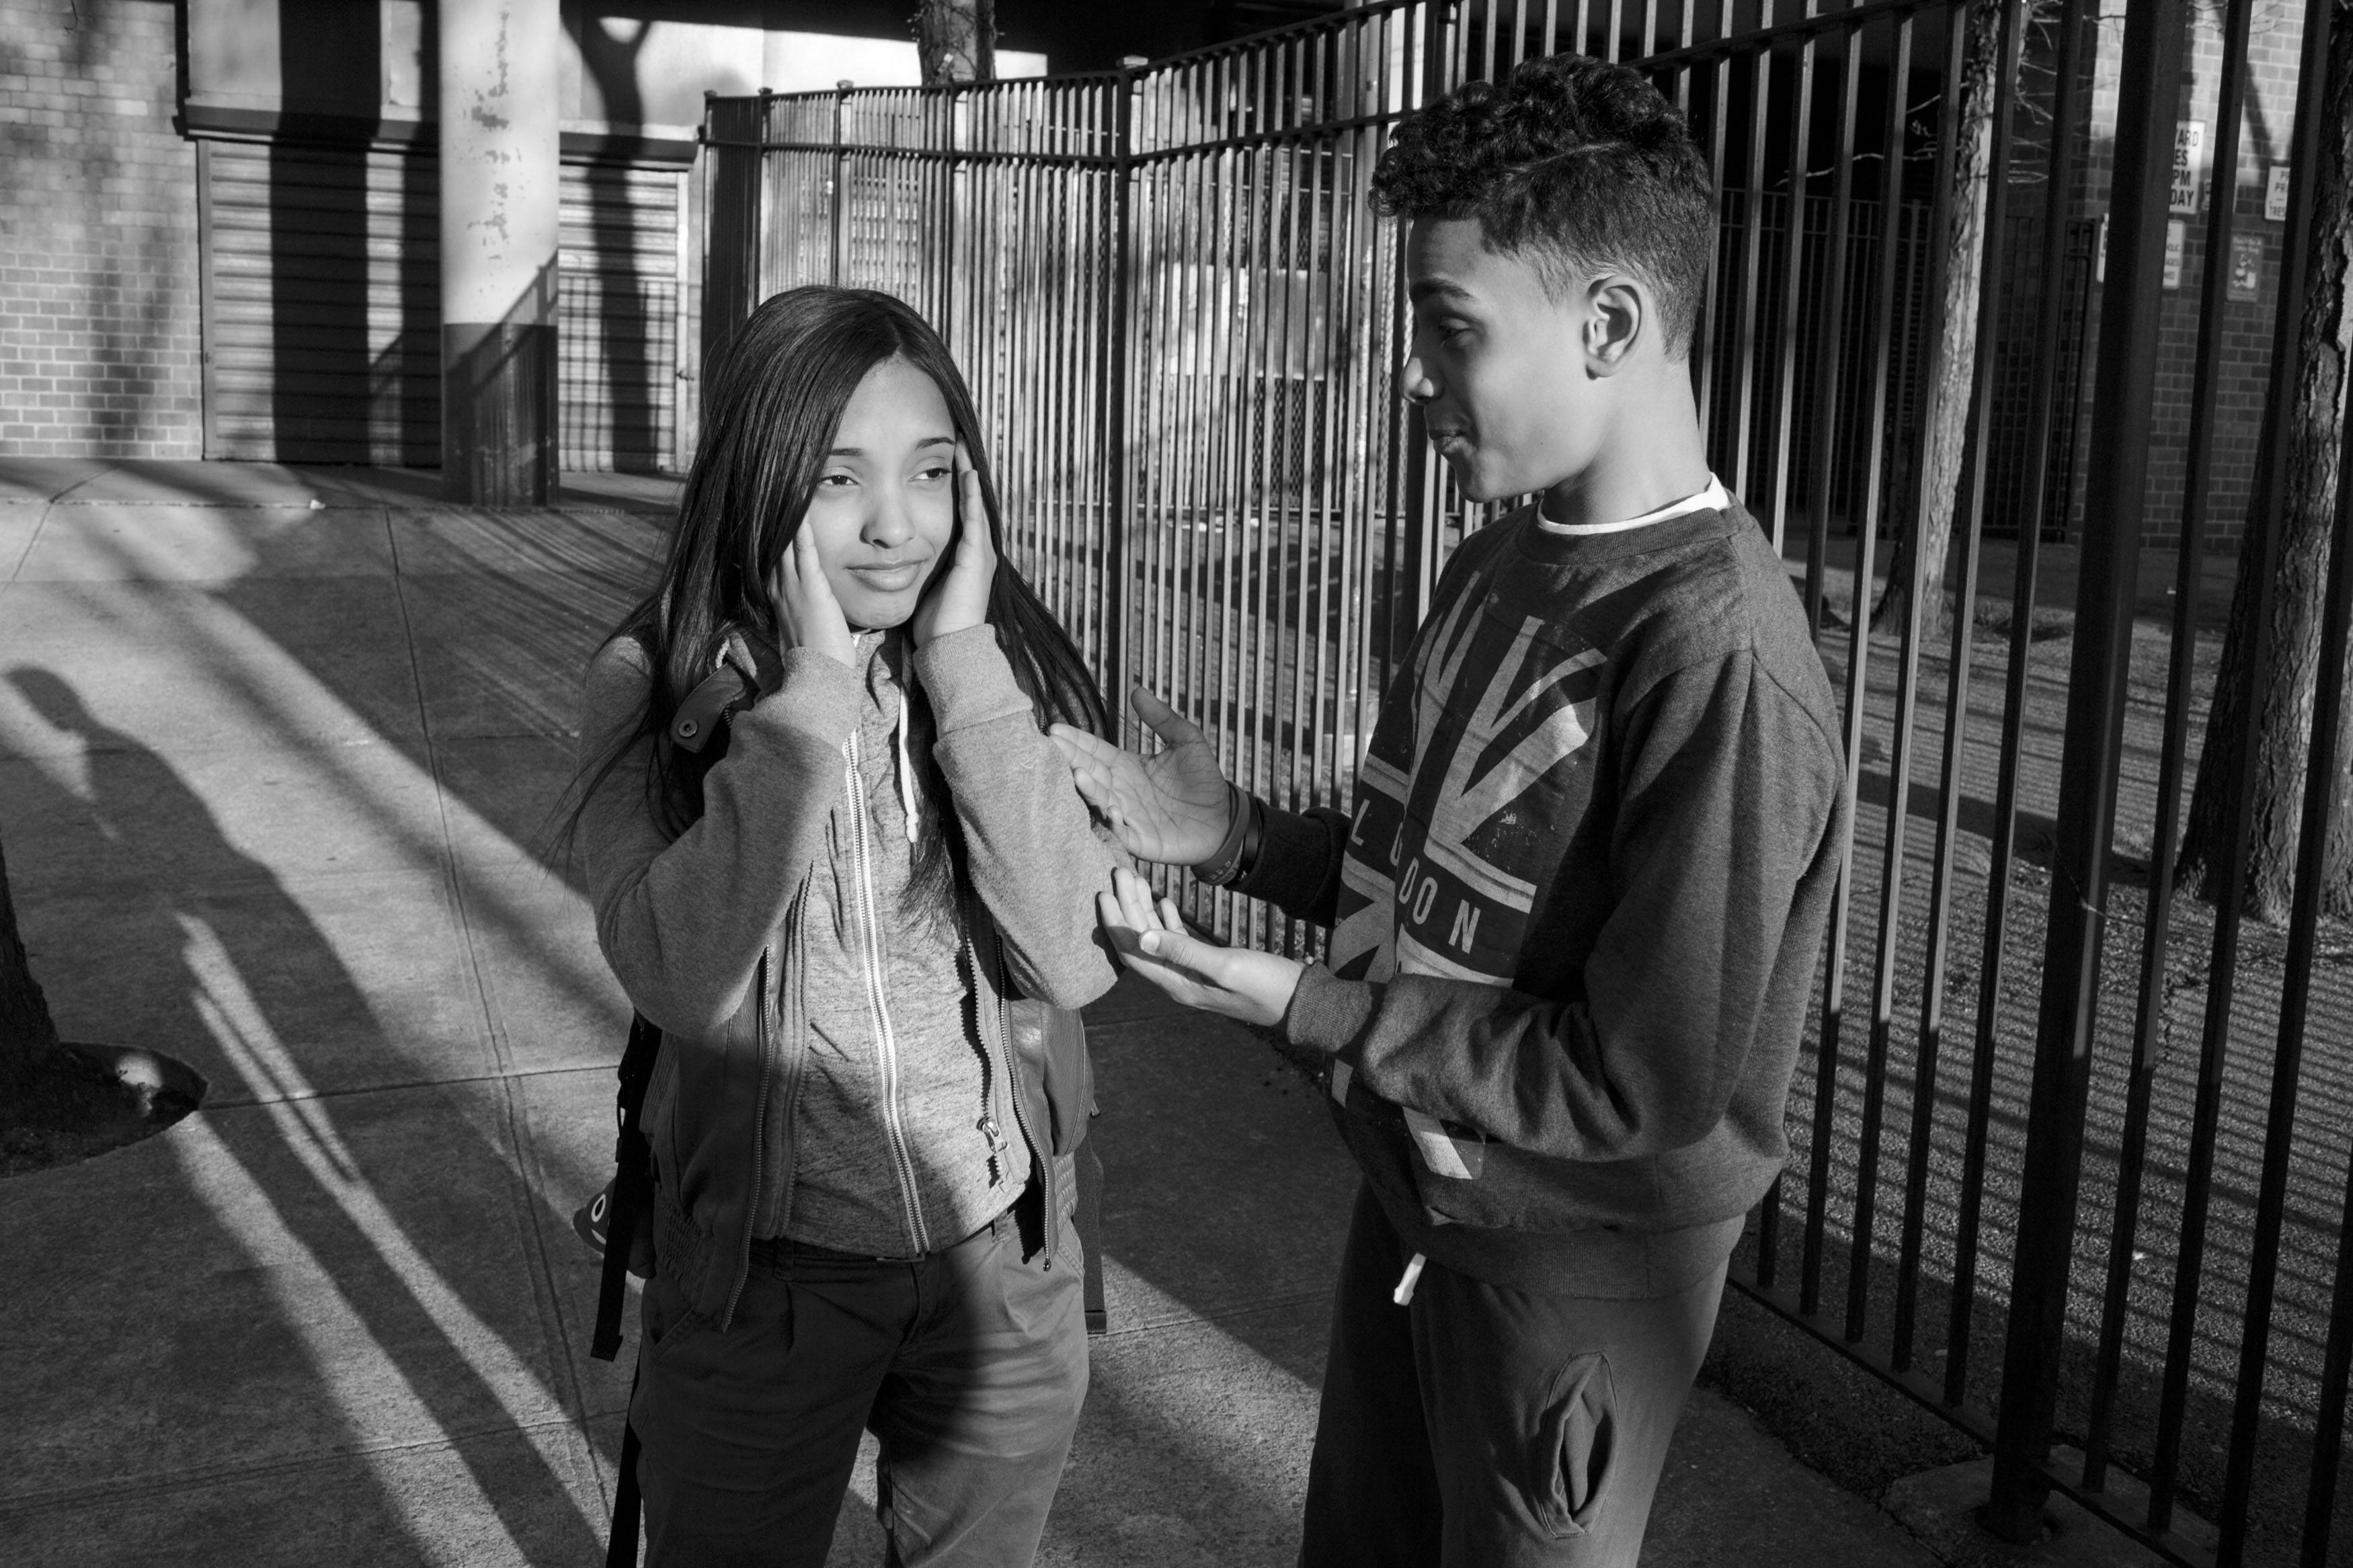 Chavi Leon talks with his neighbor and classmate after school on April 14, 2016, South Bronx, New York. (Photo by Sarah Blesener/GroundTruth/Alexia Foundation)